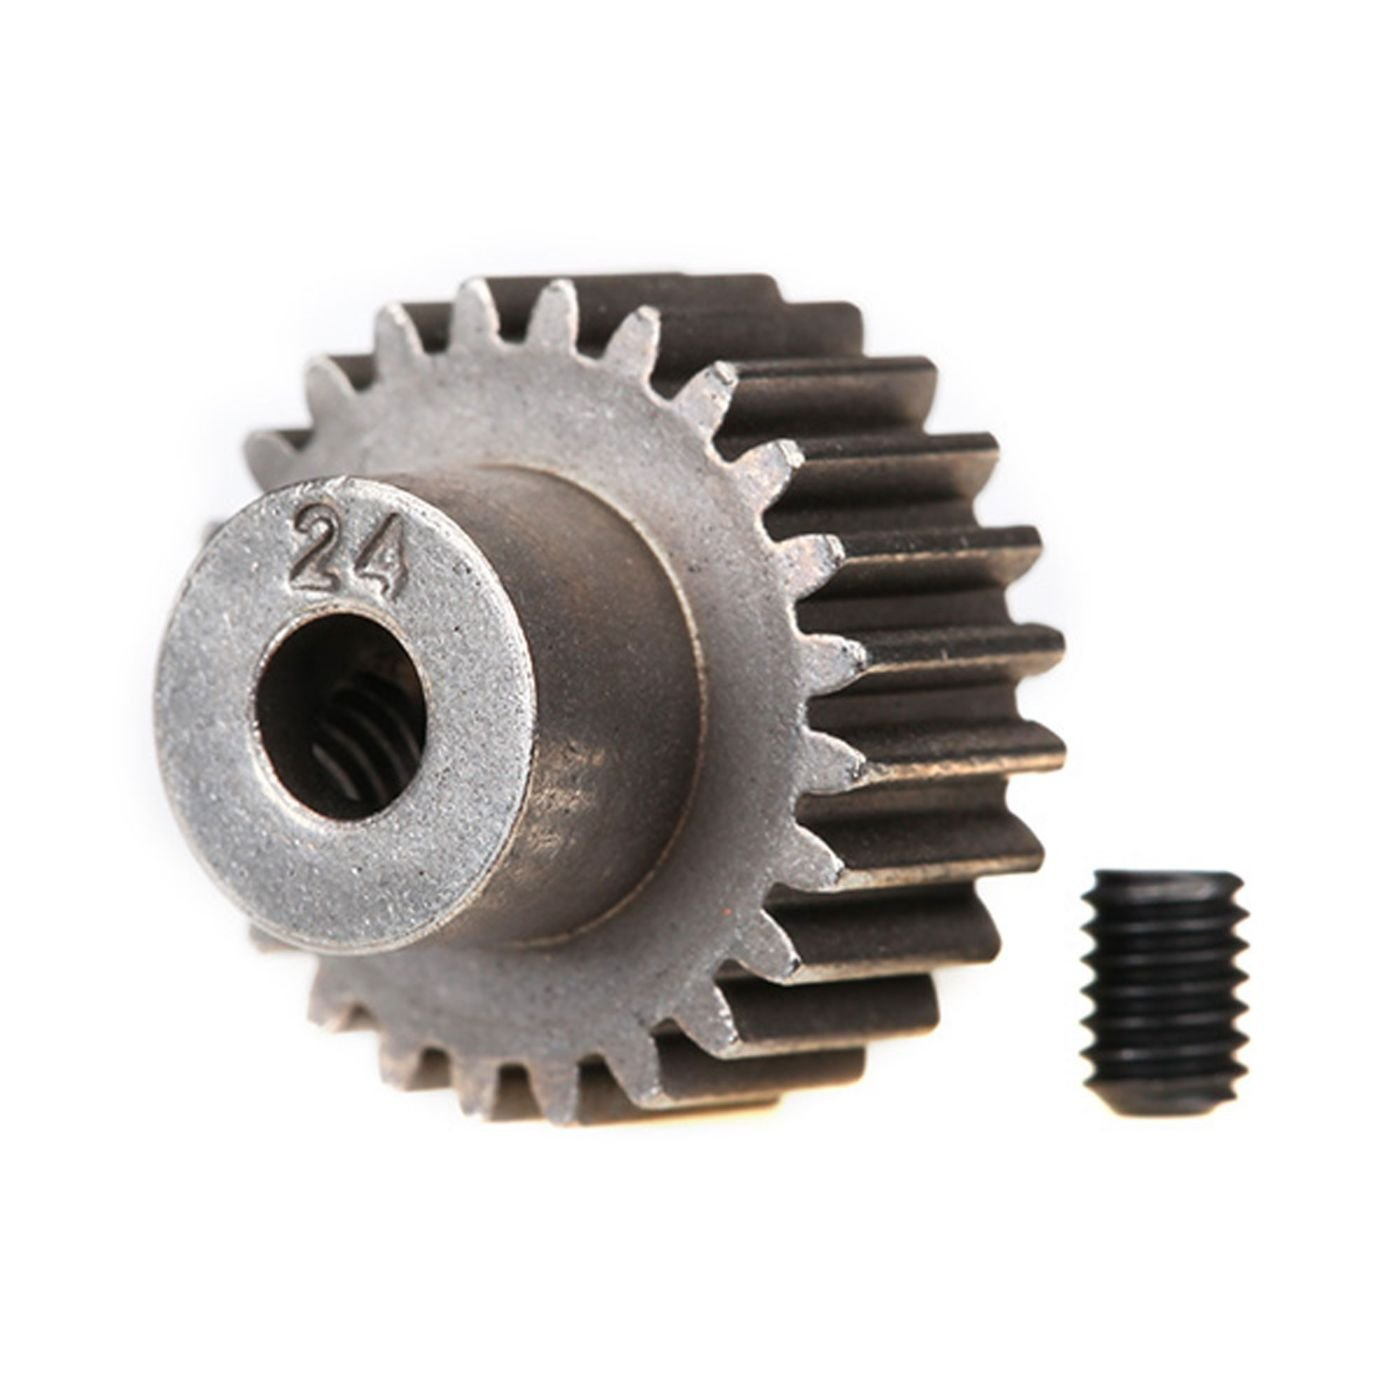 Traxxas 2424 24 Tooth Pinion Gear 48 Pitch